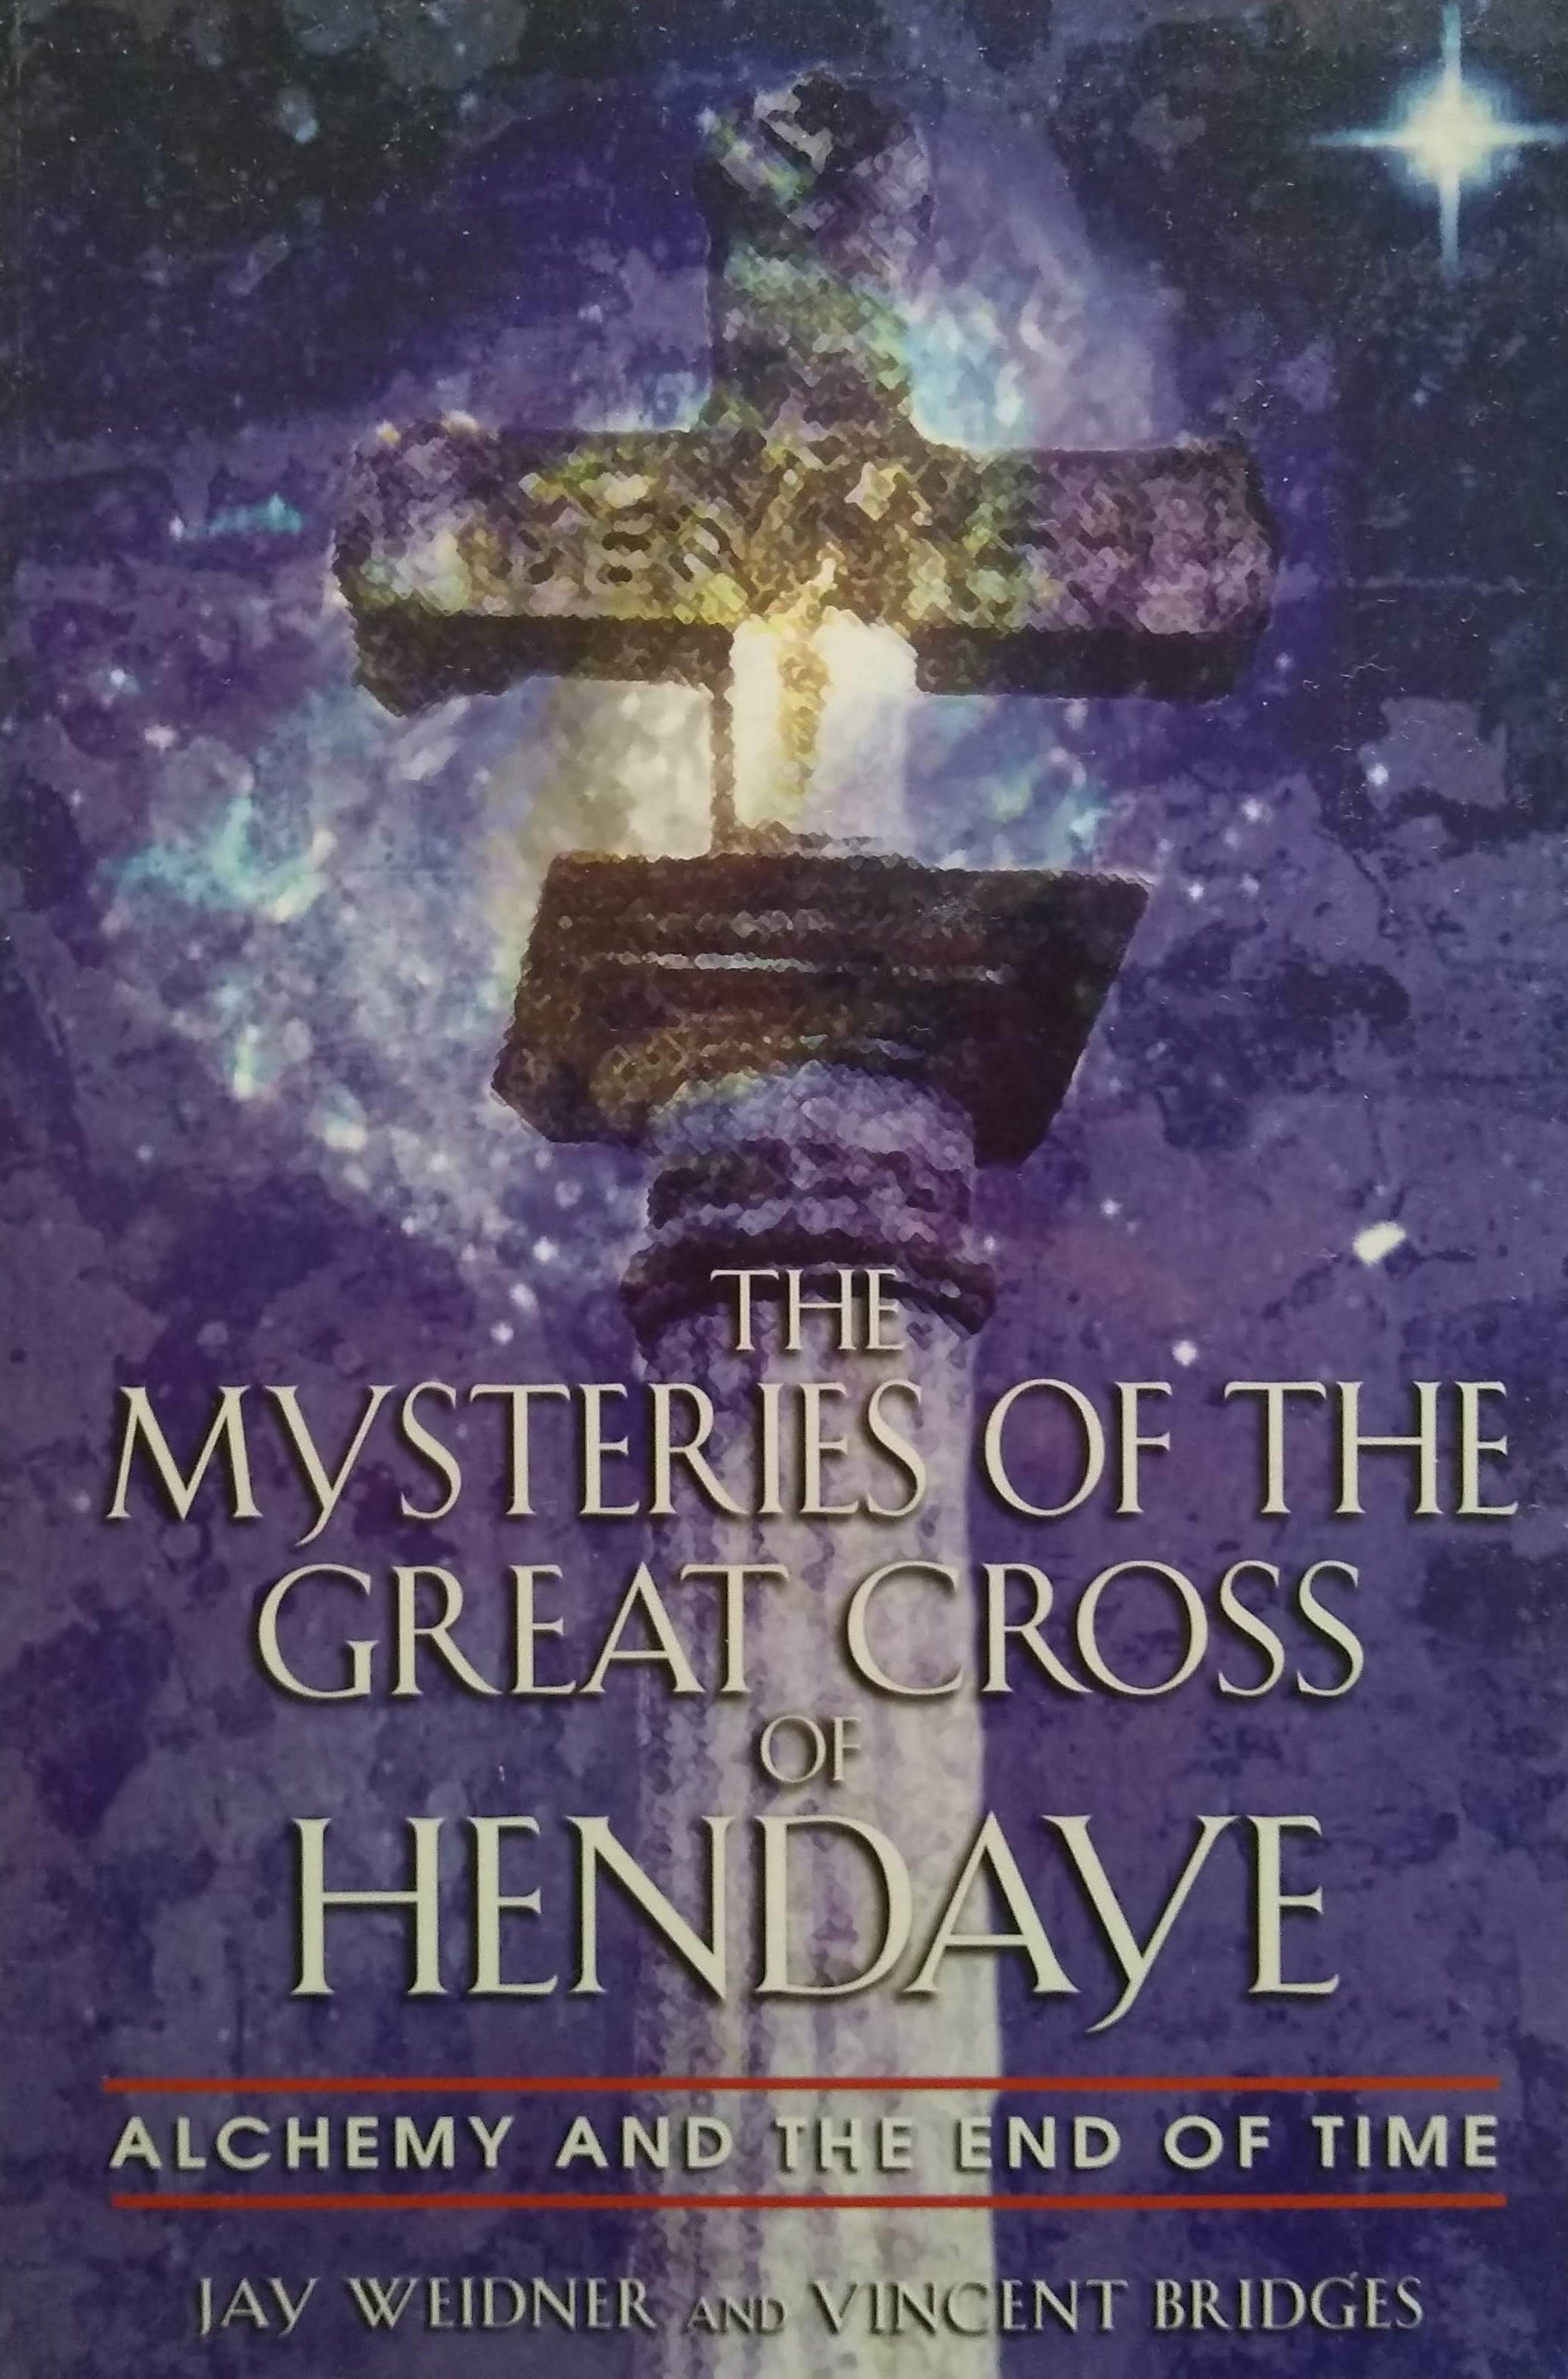 The mysteries of the grat cross of henda